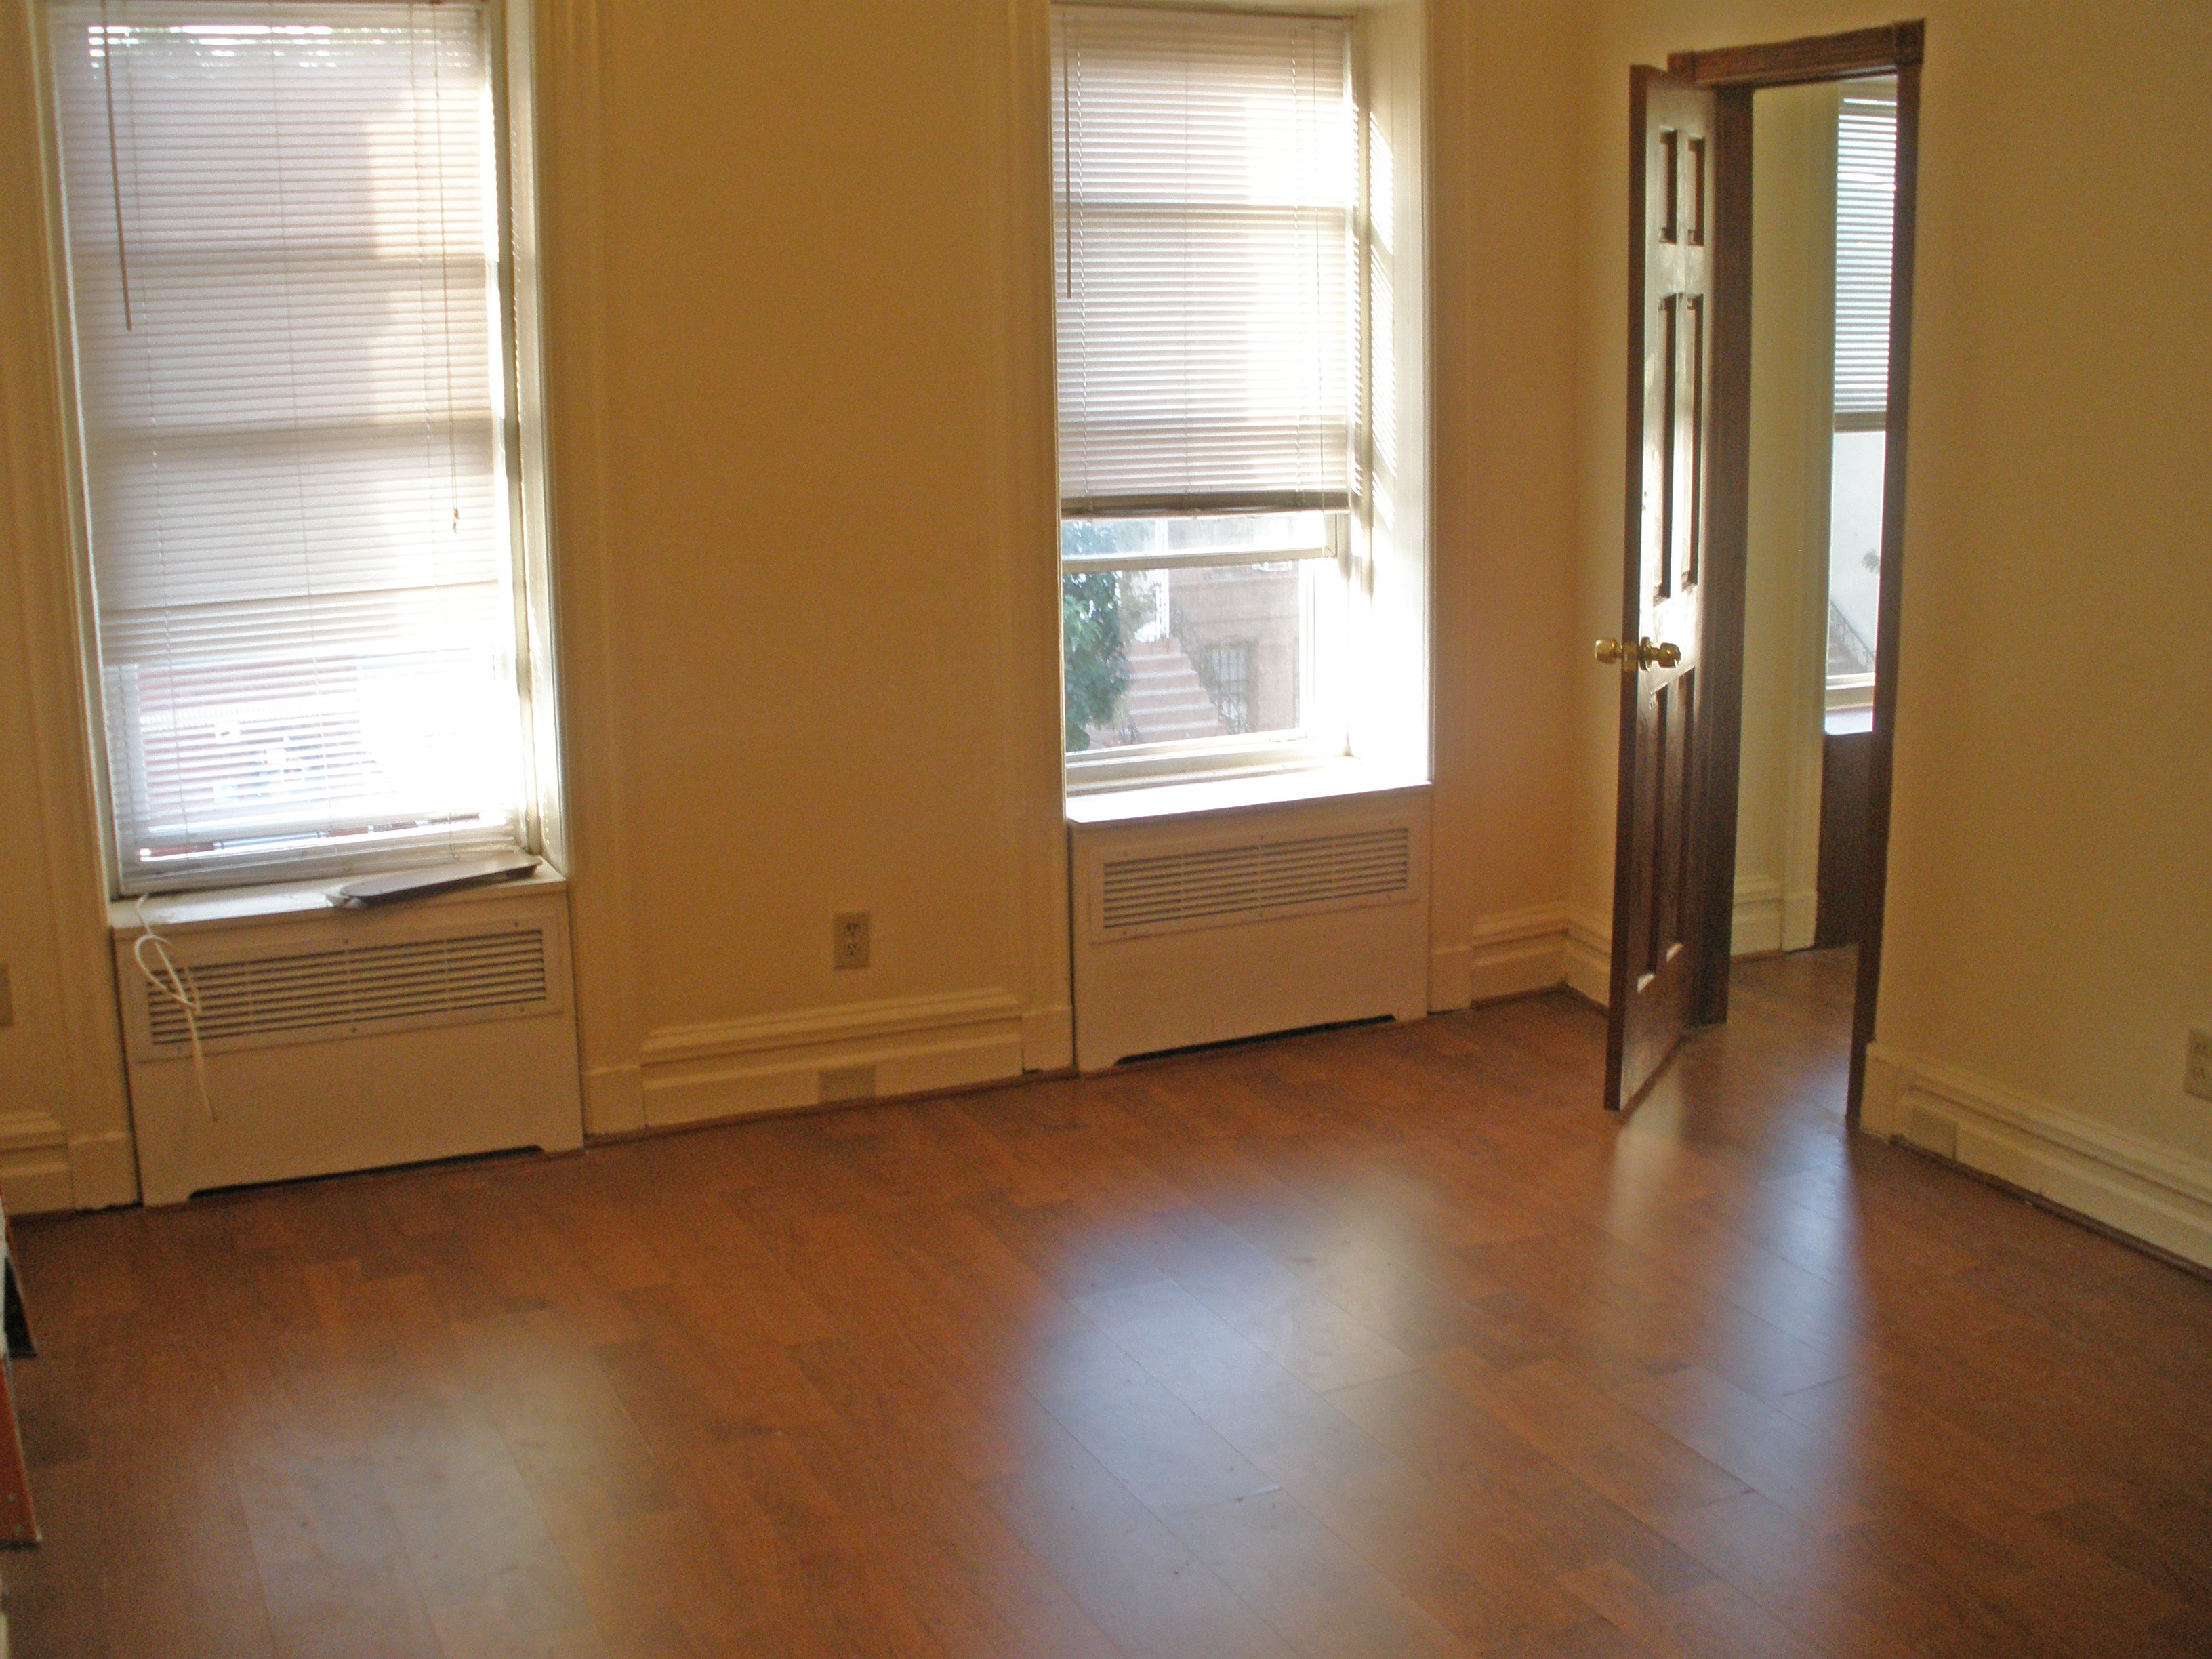 Bed Stuy 2 Bedroom Apartment For Rent Brooklyn Crg3117